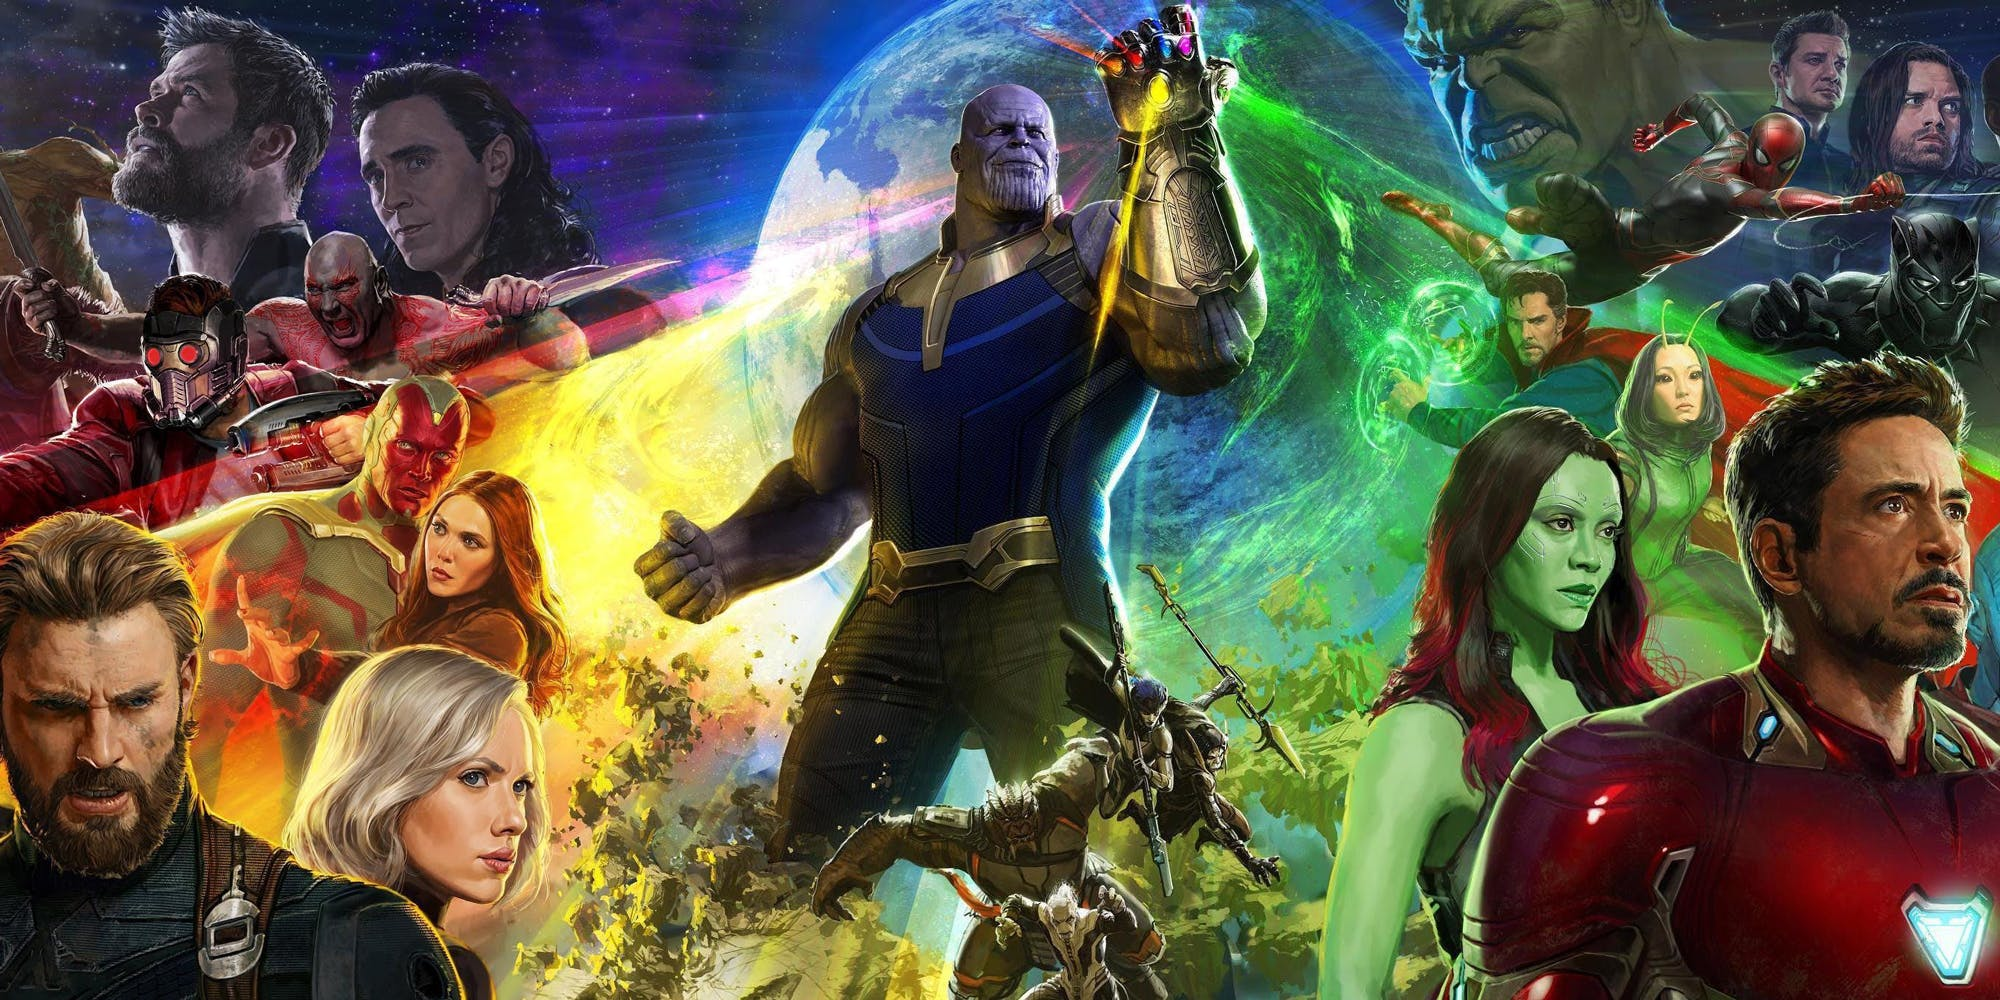 do-you-think-thanos-will-actually-destroy-half-of-the-universe-in-avengers-infinity-war2